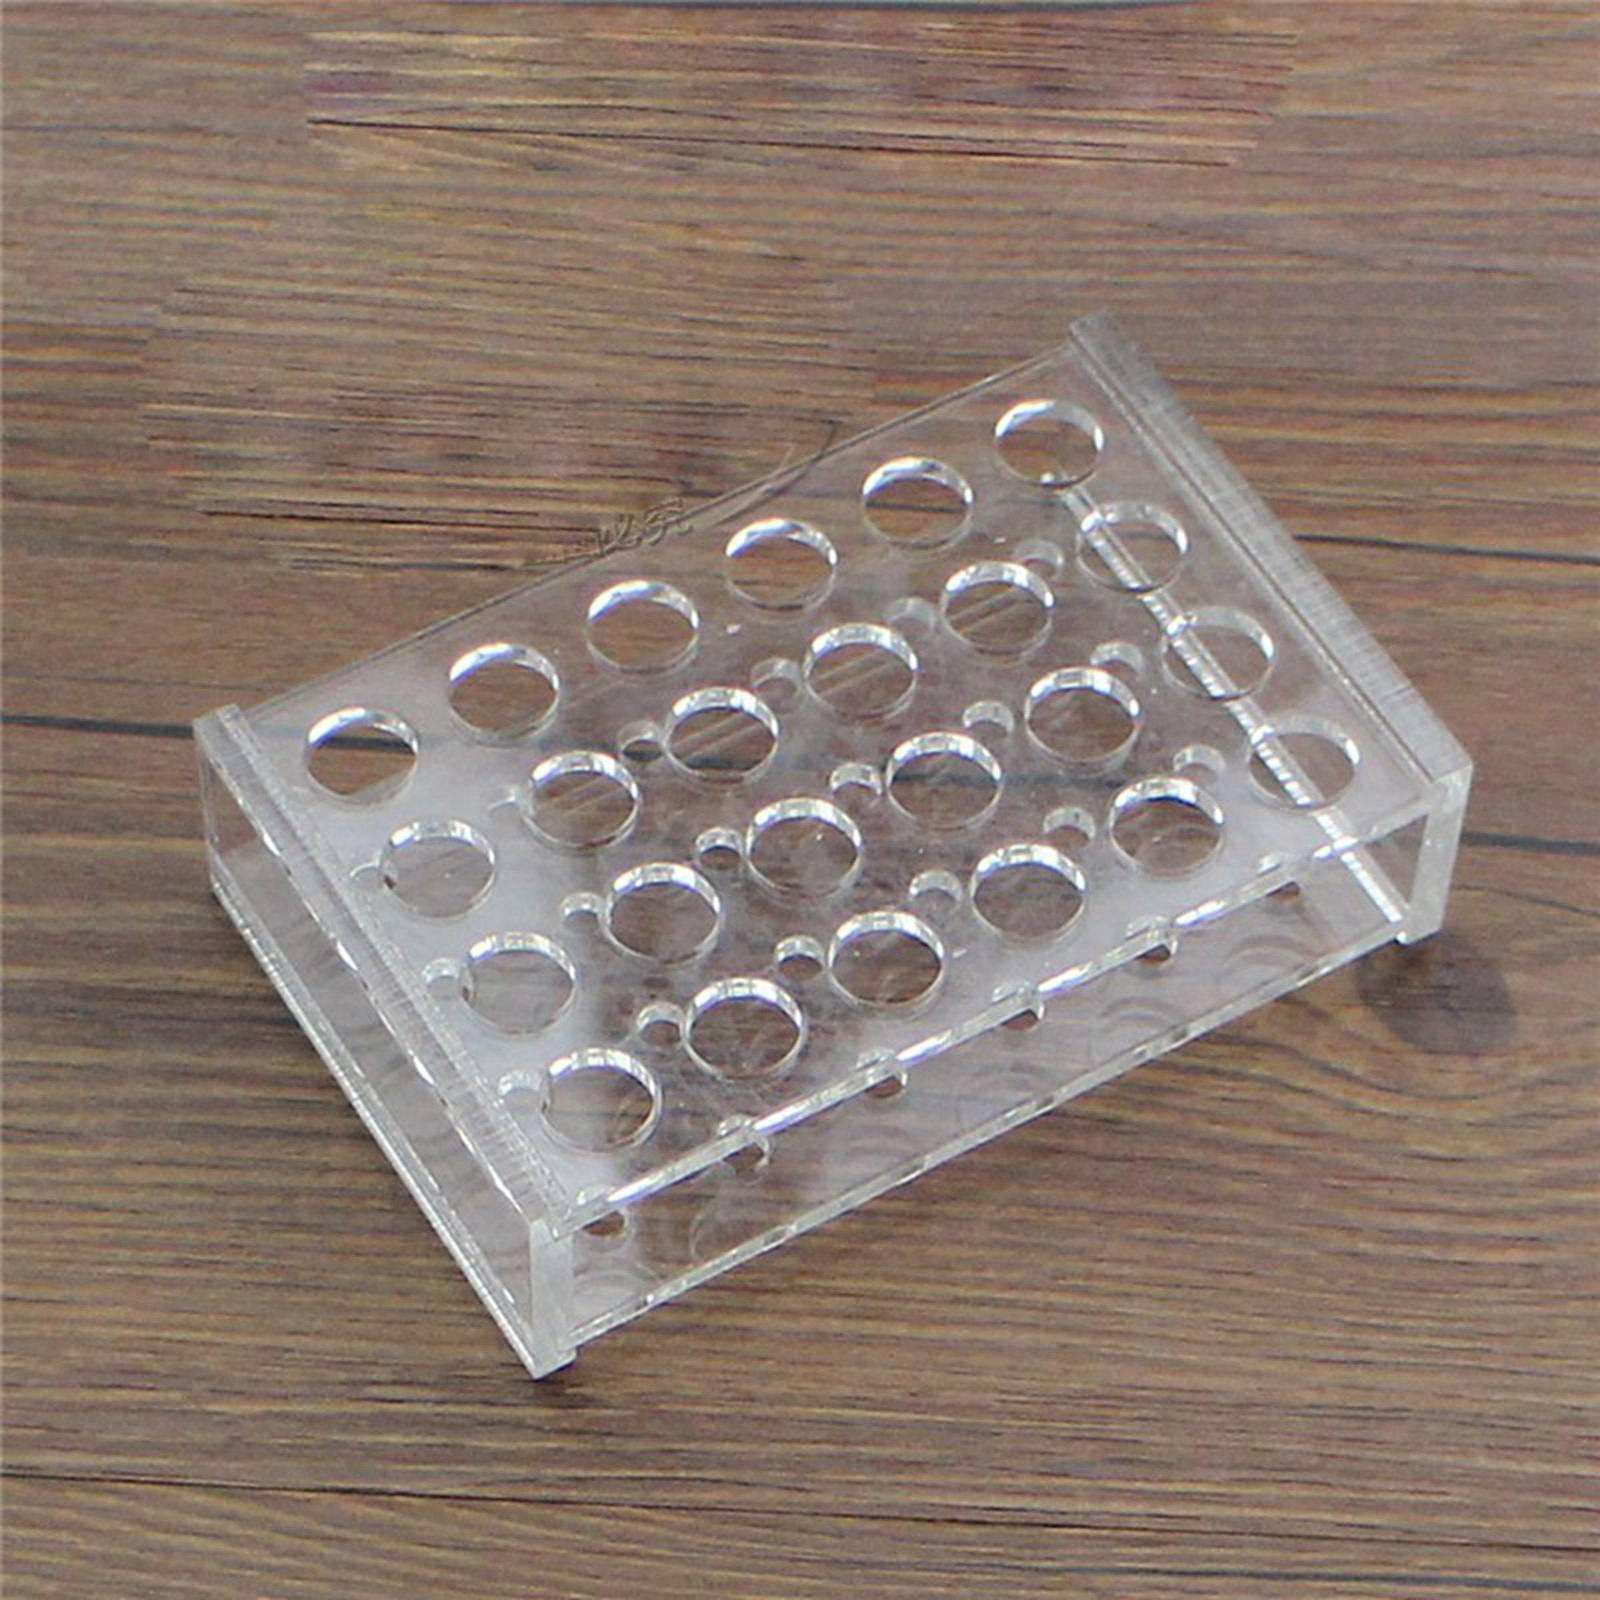 14mm Diam 24 Holes Methyl Methacrylate Rack Stand For 5ml Centrifuge Tubes